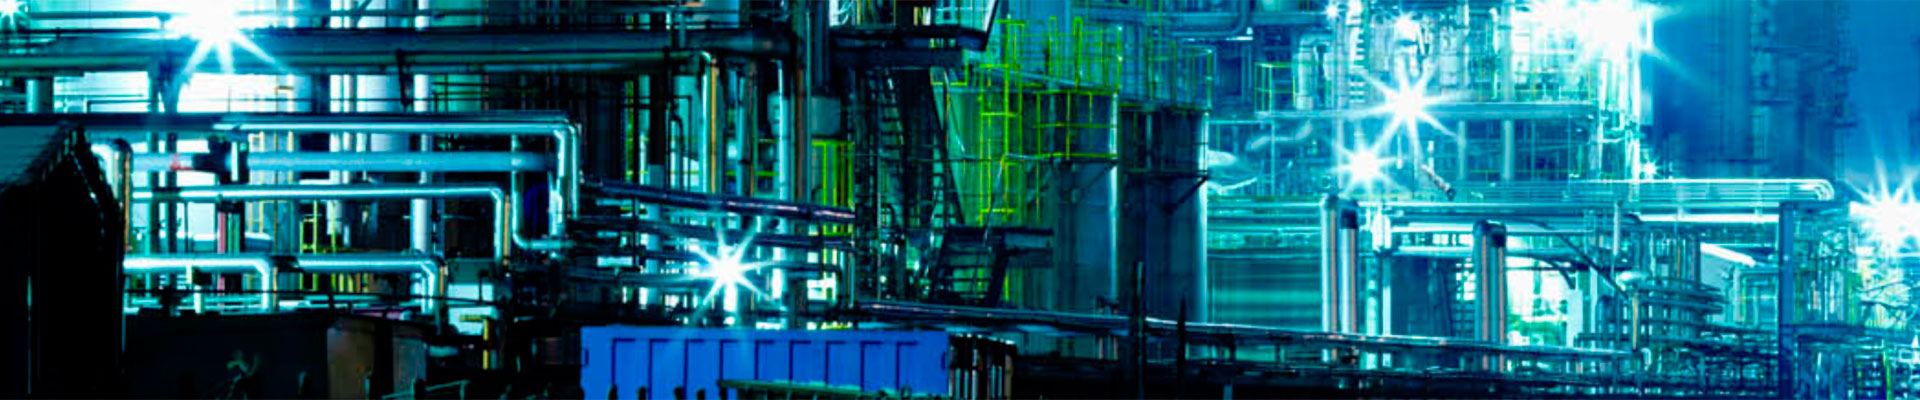 Machine protection systems and sensors (MPS)